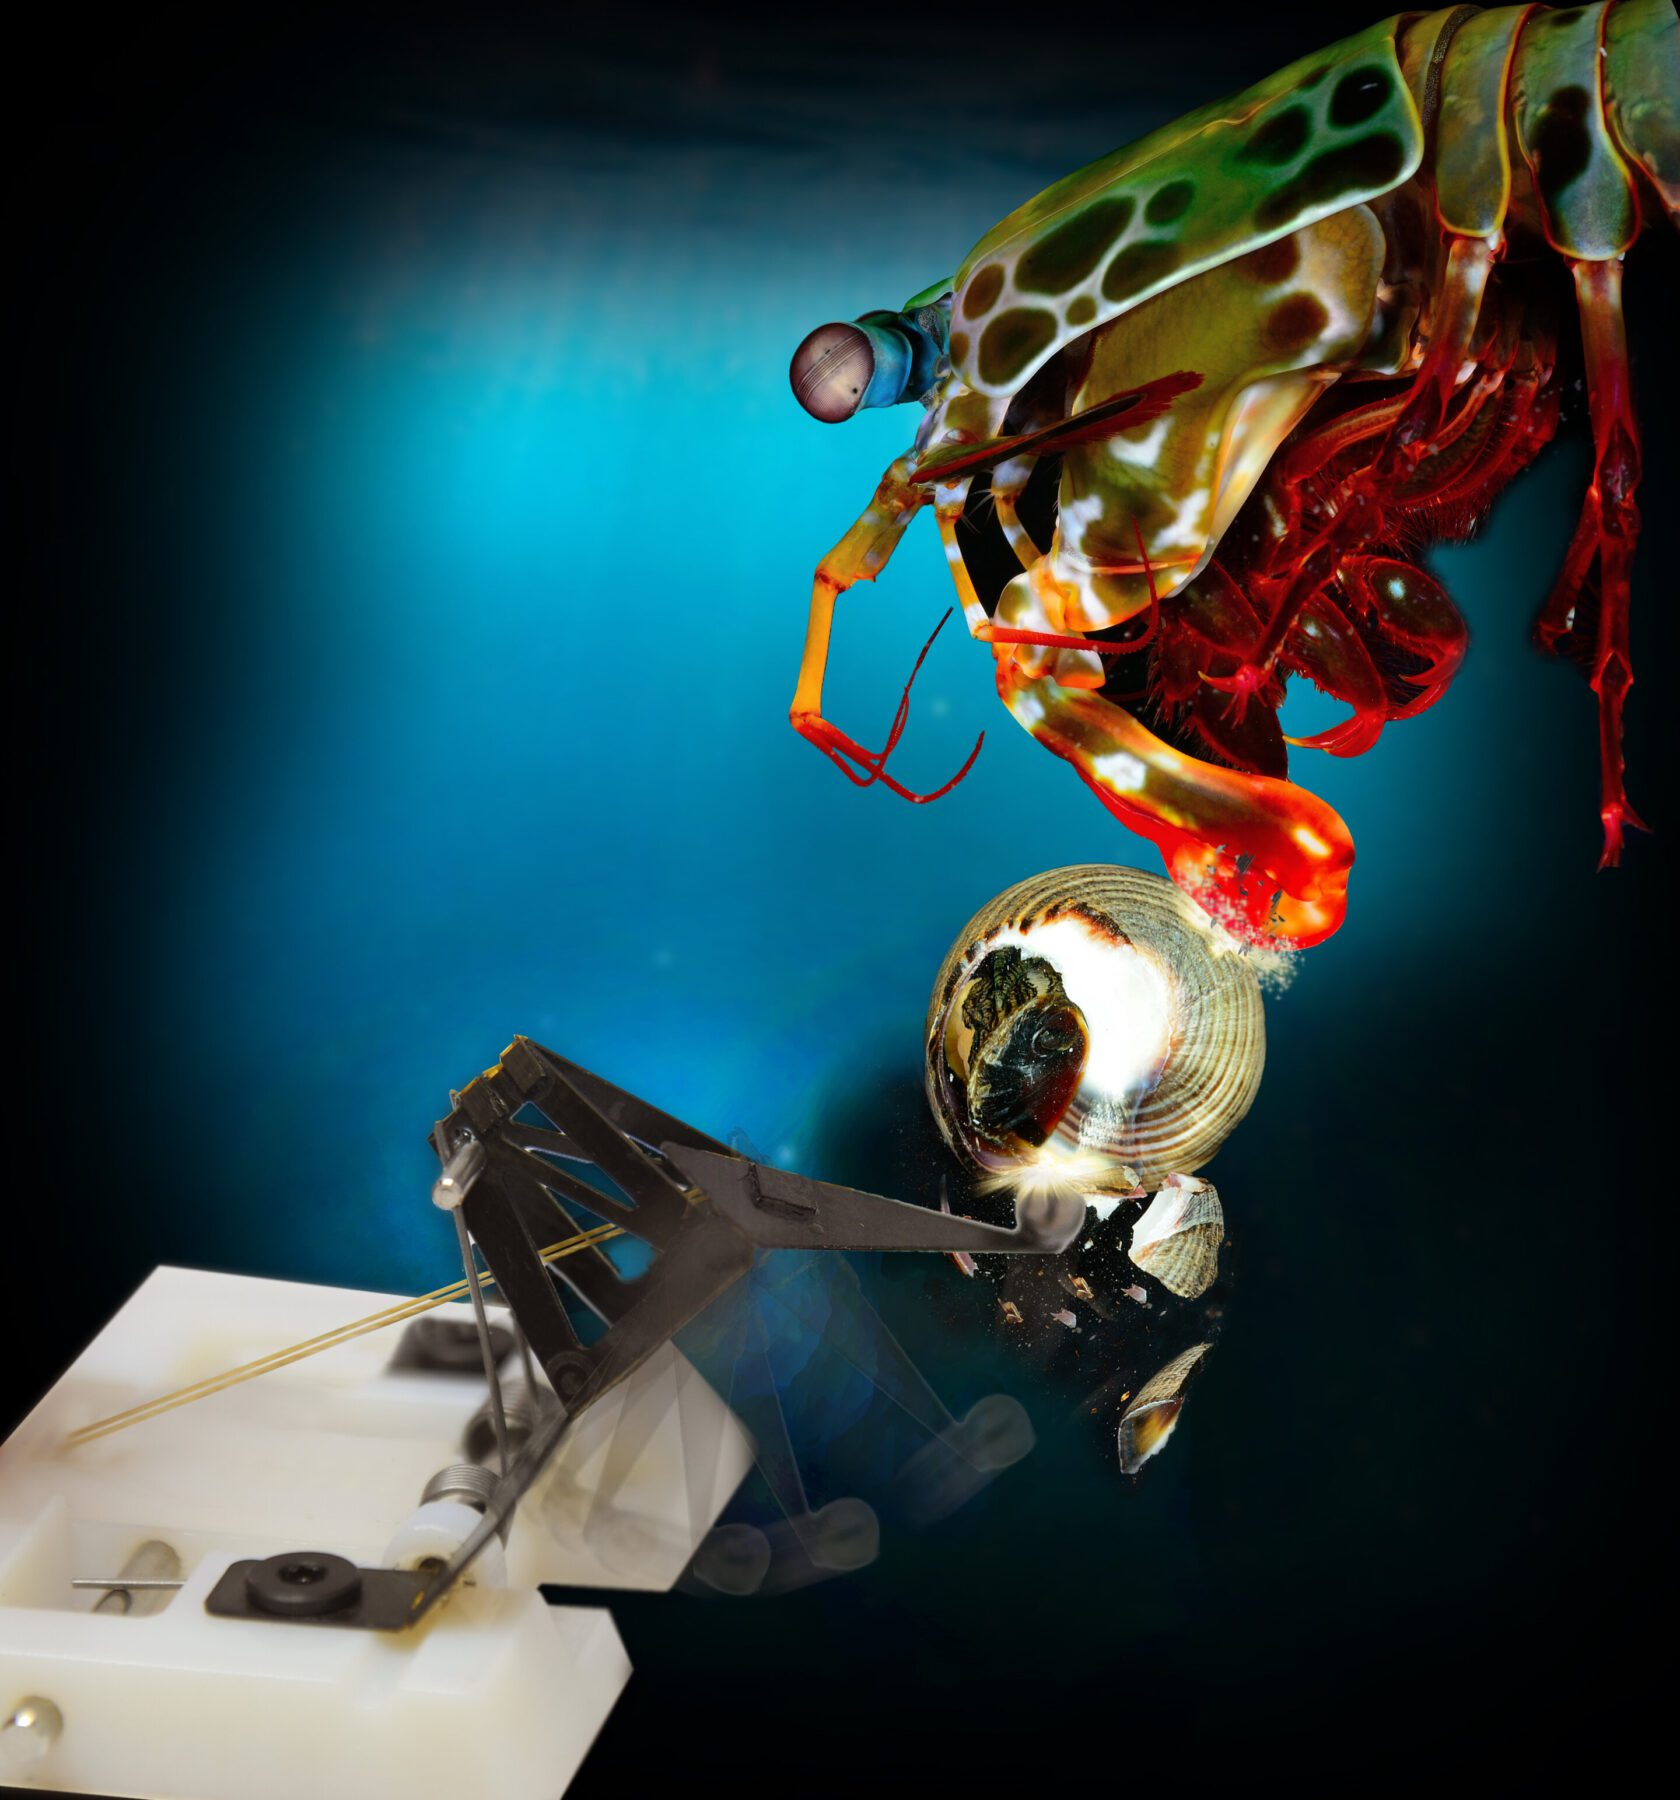 An interdisciplinary team of roboticists, engineers and biologists modeled the mechanics of the mantis shrimp's punch and built a robot that mimics the movement. (Credit: Second Bay Studios and Roy Caldwell/Harvard SEAS)